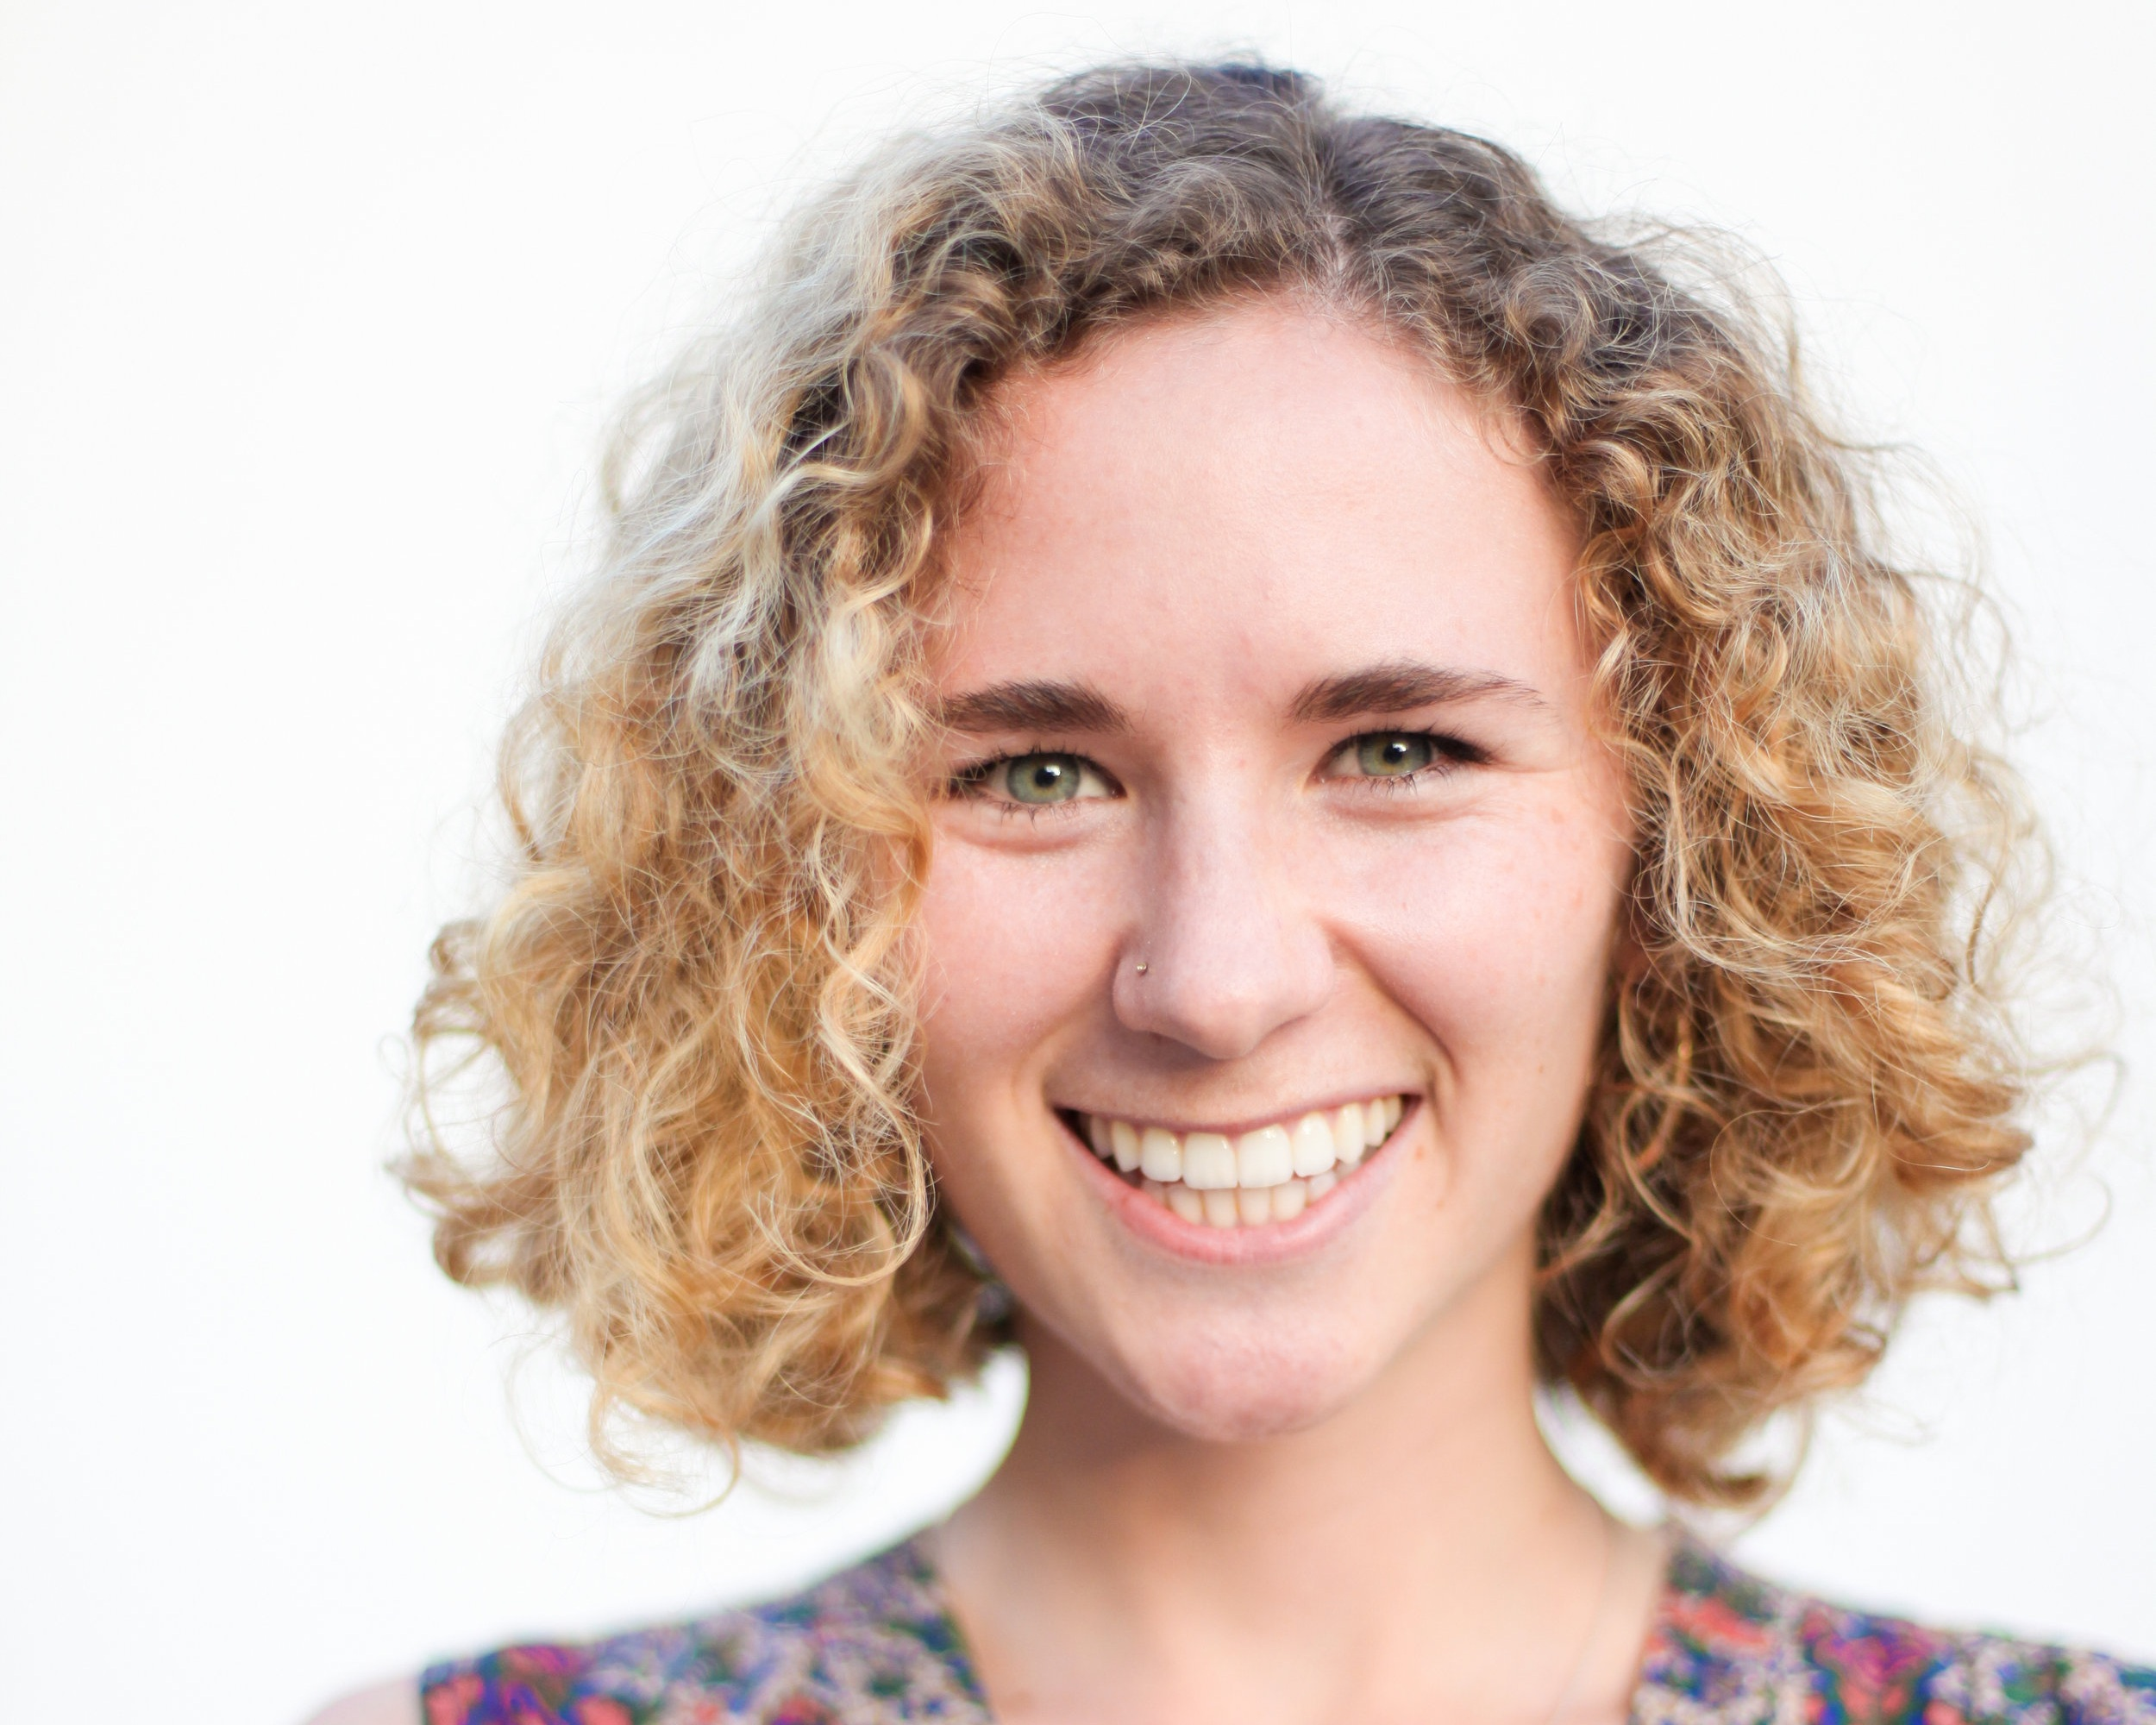 Marin Callaway   Marin graduated from Stanford University in 2018, where she studied International Relations. Marin also worked extensively as a JusticeCorps advocate in the San Mateo County Superior Court, guiding self-represented litigants through family court and supporting multiple attorneys. She speaks fluent Spanish.